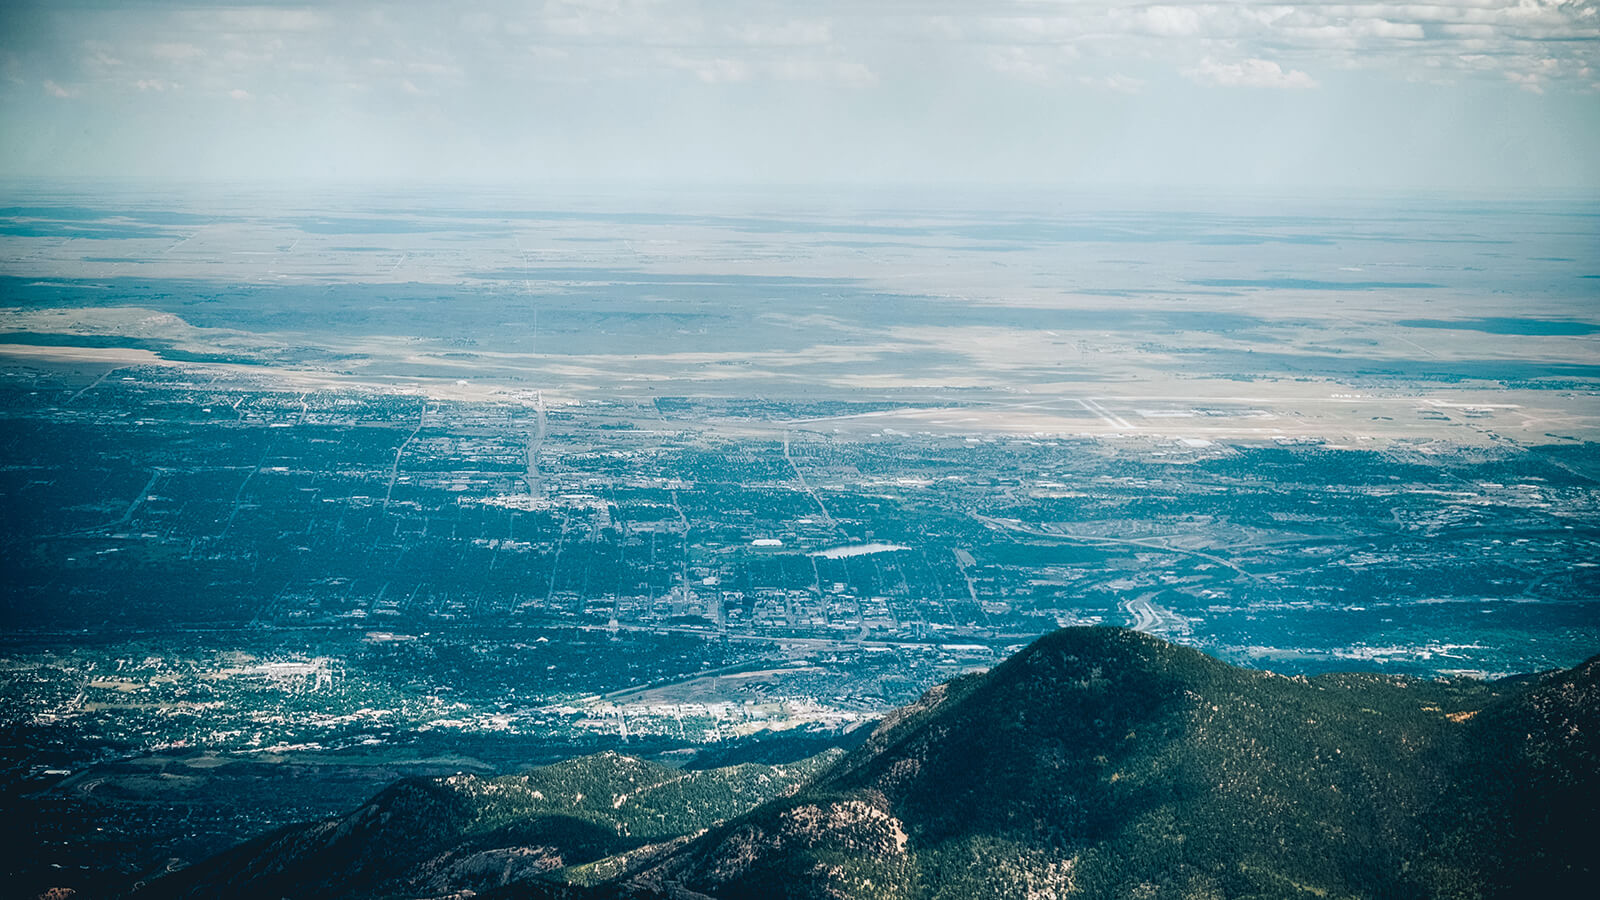 View from the summit of Pikes Peak in Colorado, over 14,000 feet above sea level